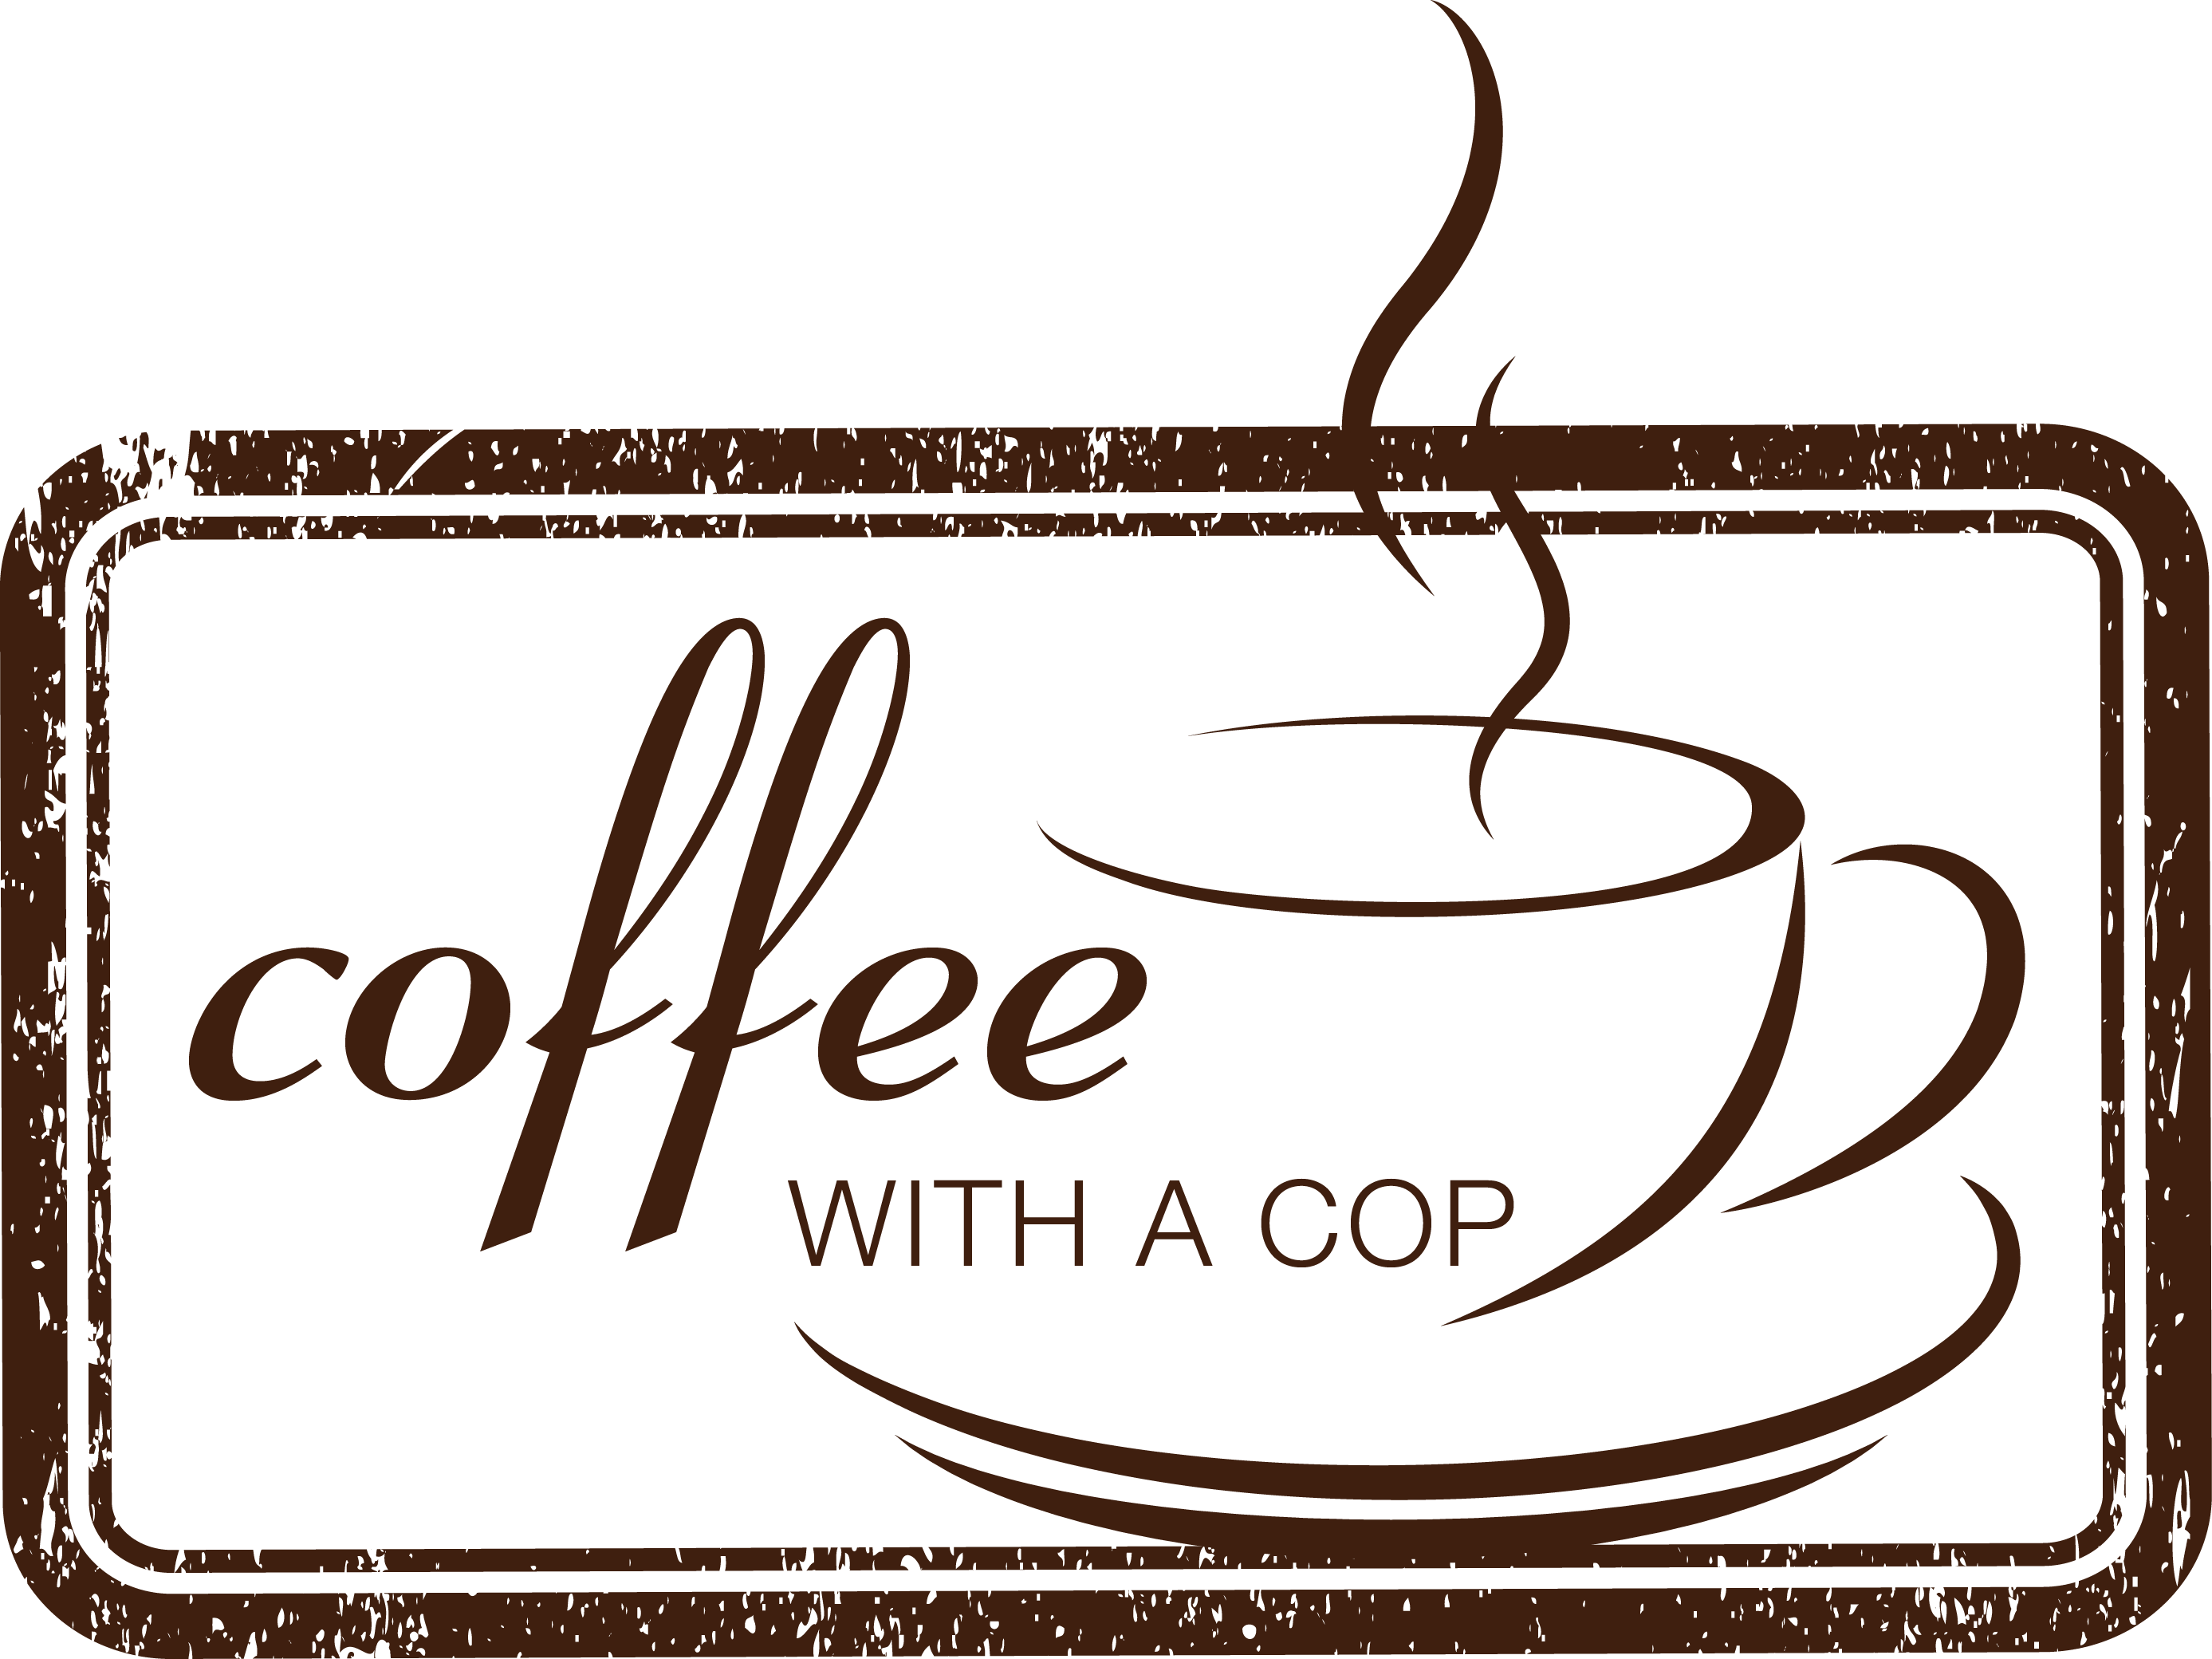 Coffee clip station. With a cop maryborough